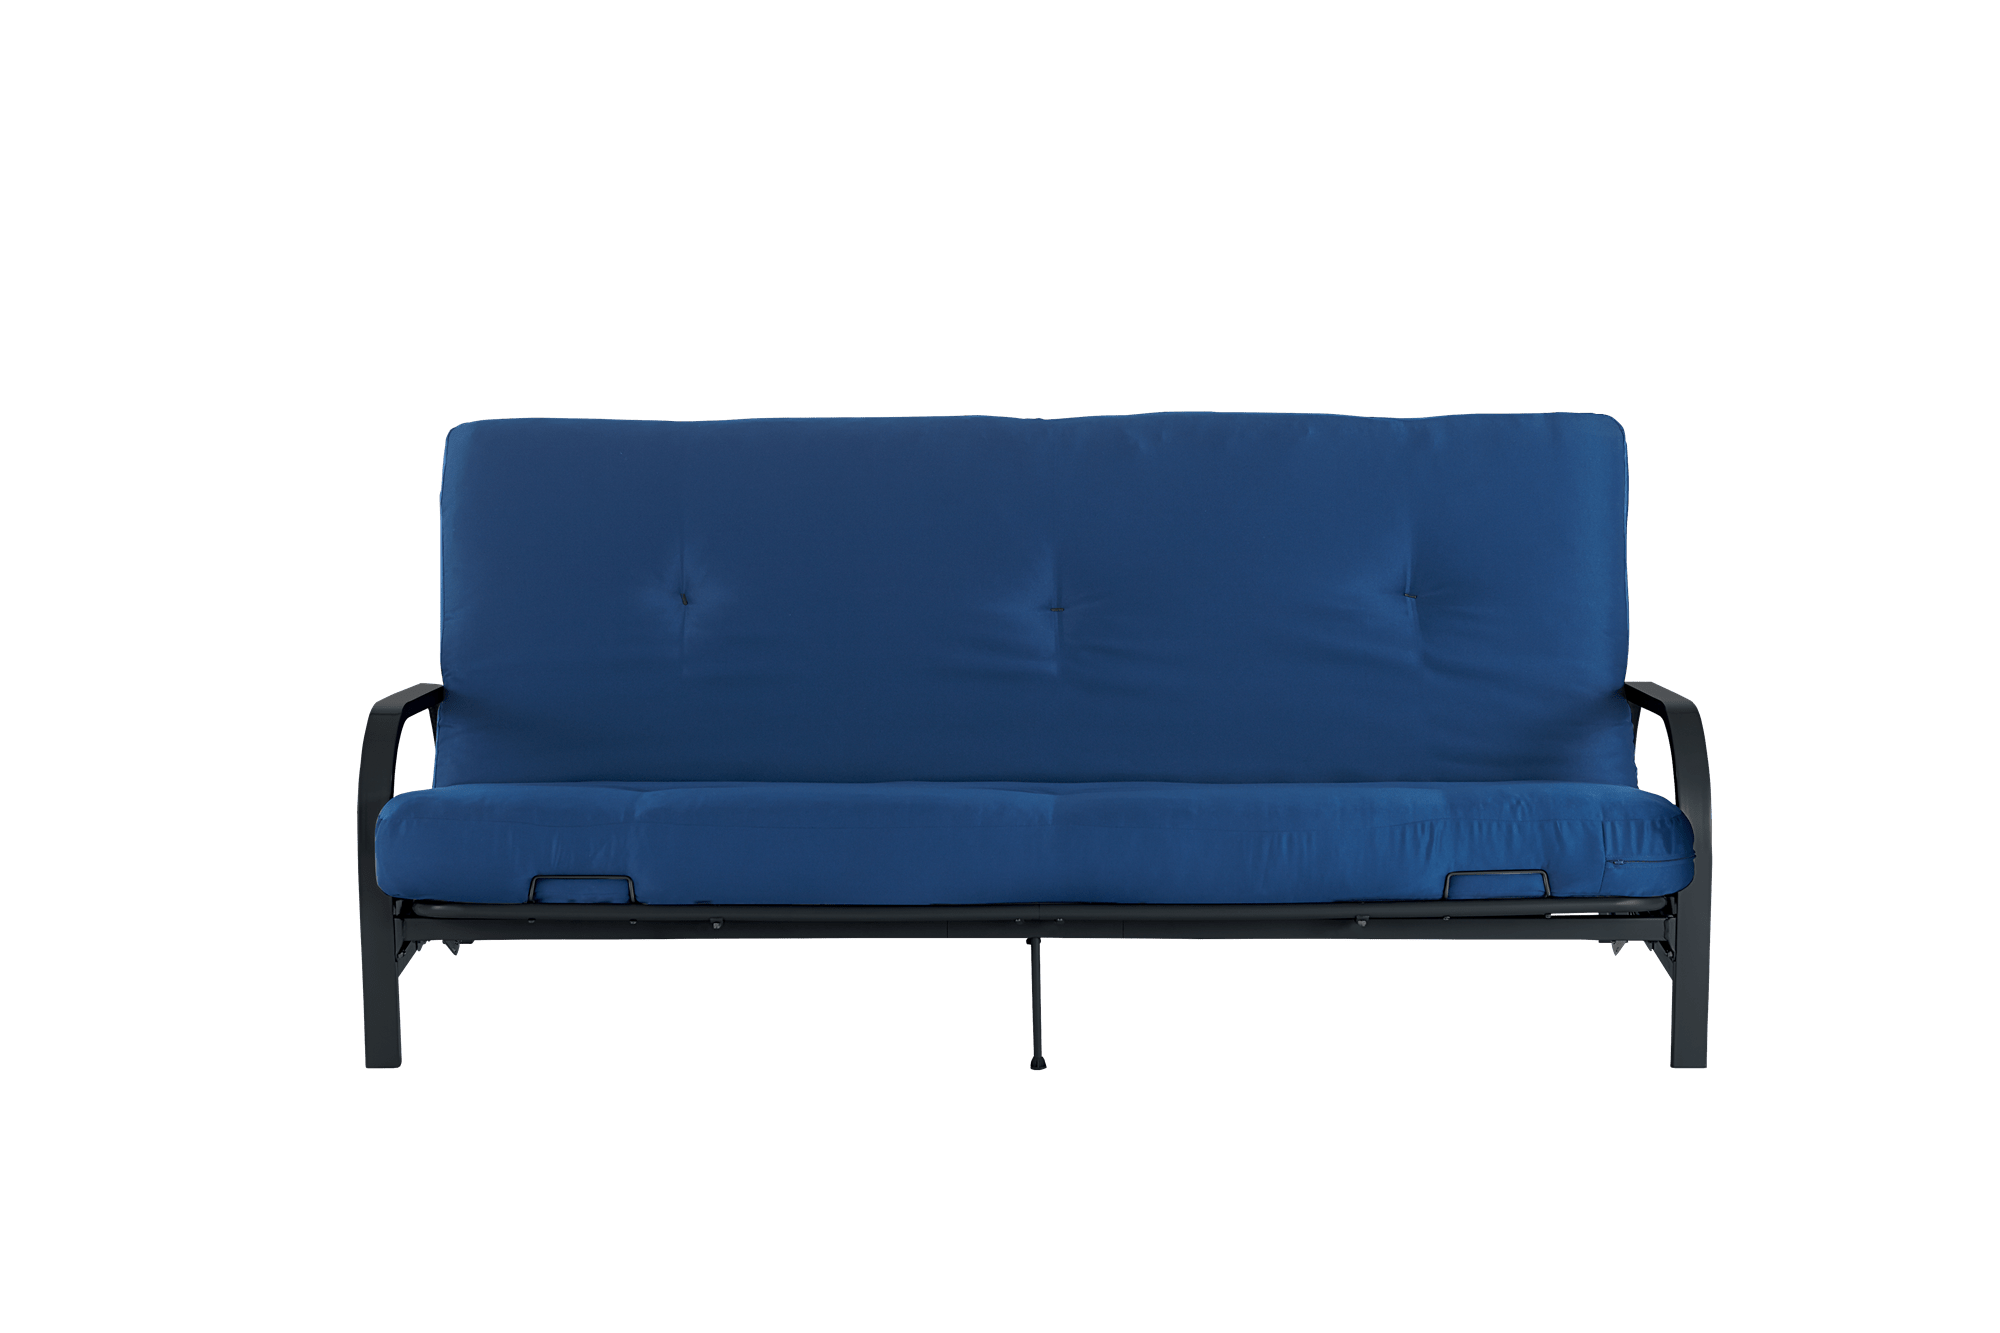 hight resolution of mainstays black metal arm futon with full size mattress multiple colors walmart com